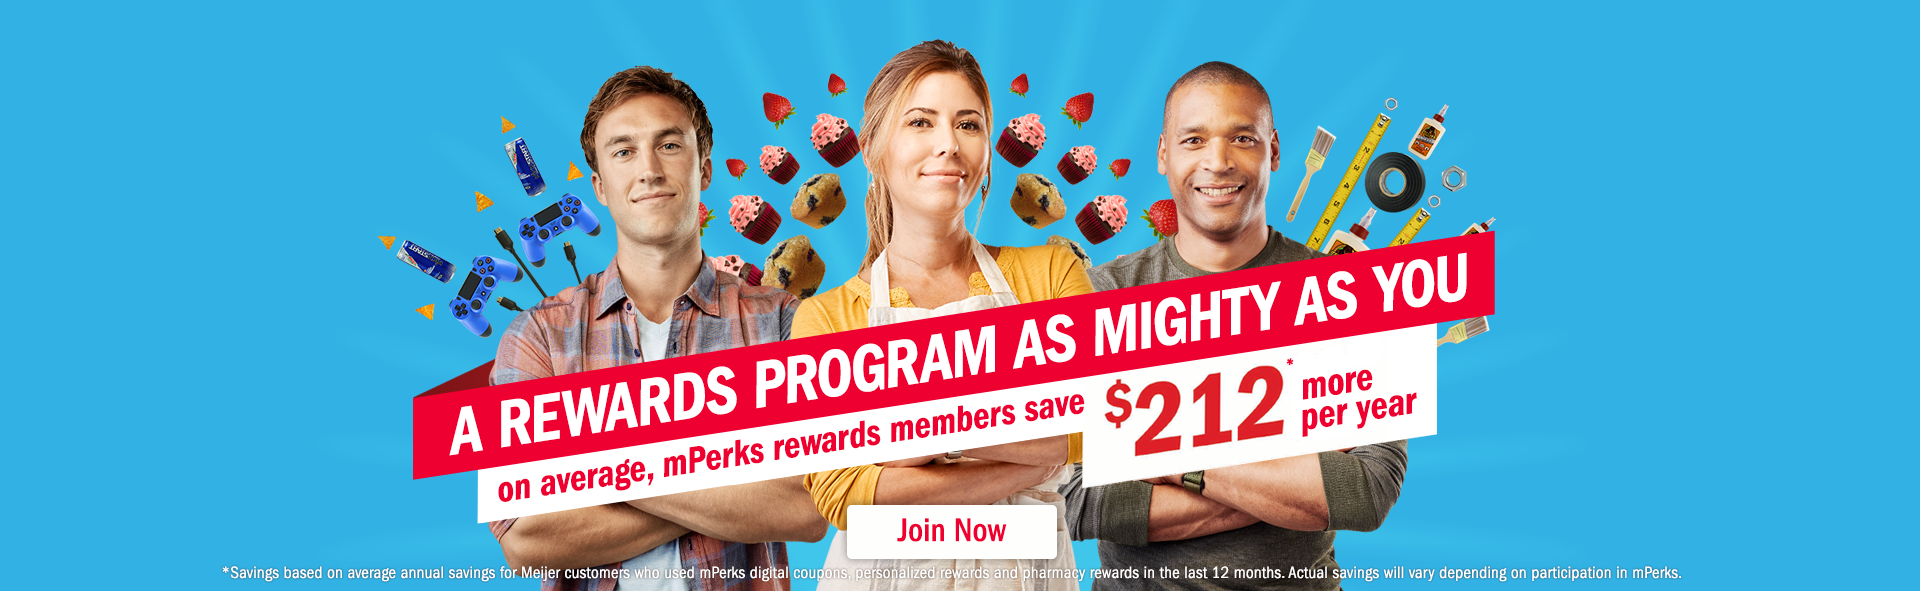 A rewards program as mighty as you. on average, mperks rewards members save $212 more per year.